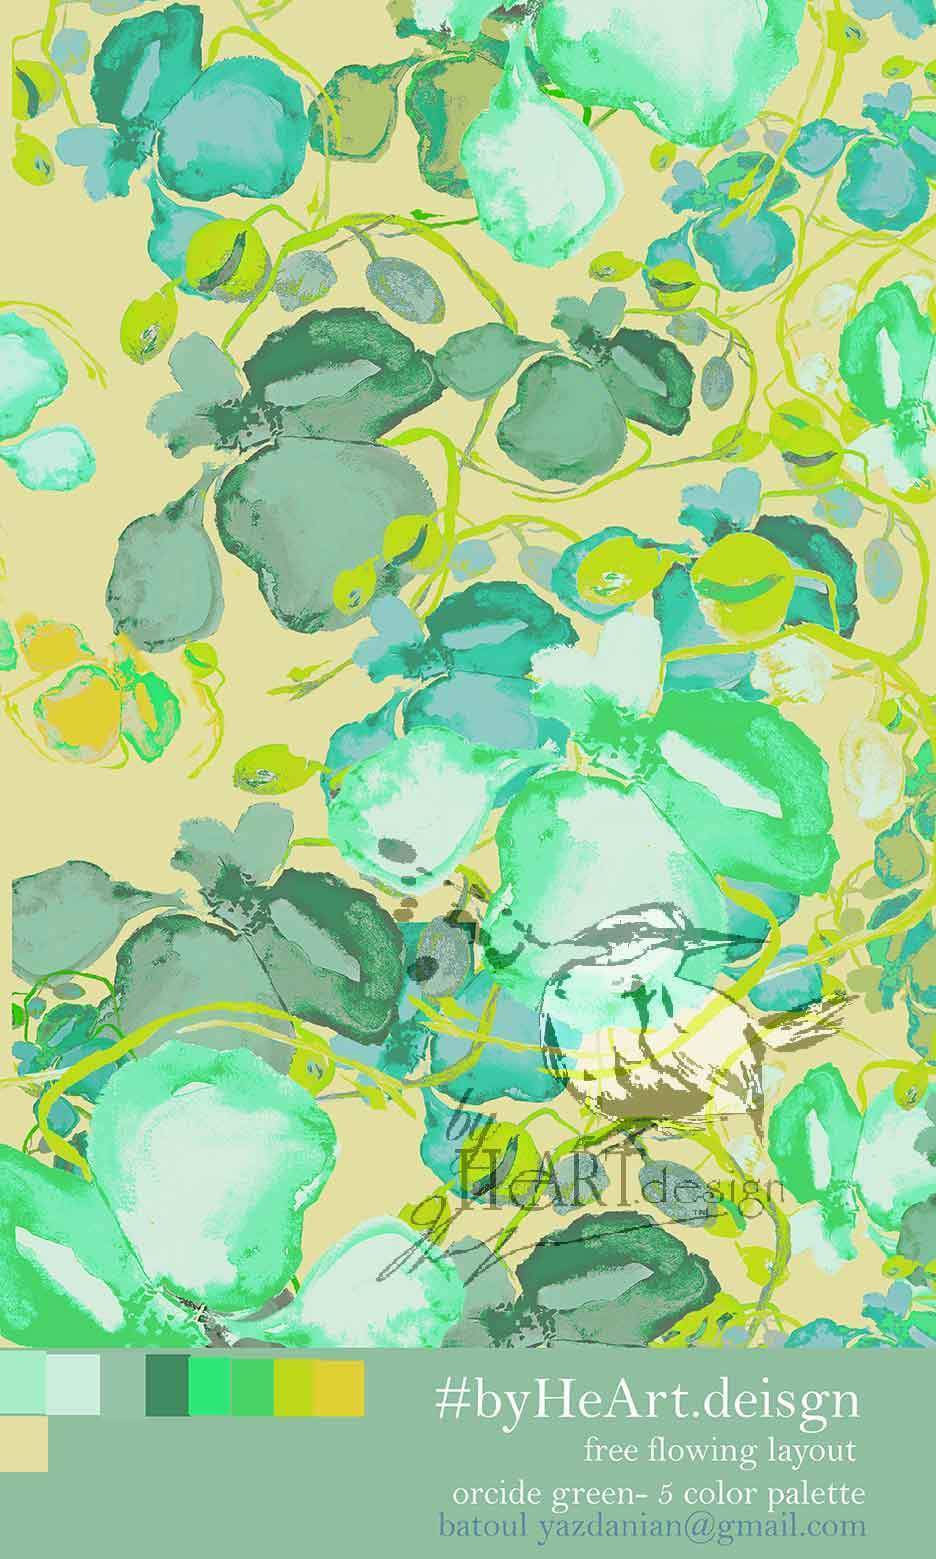 FLORAL DESIGN, GREEN ORCHIDS